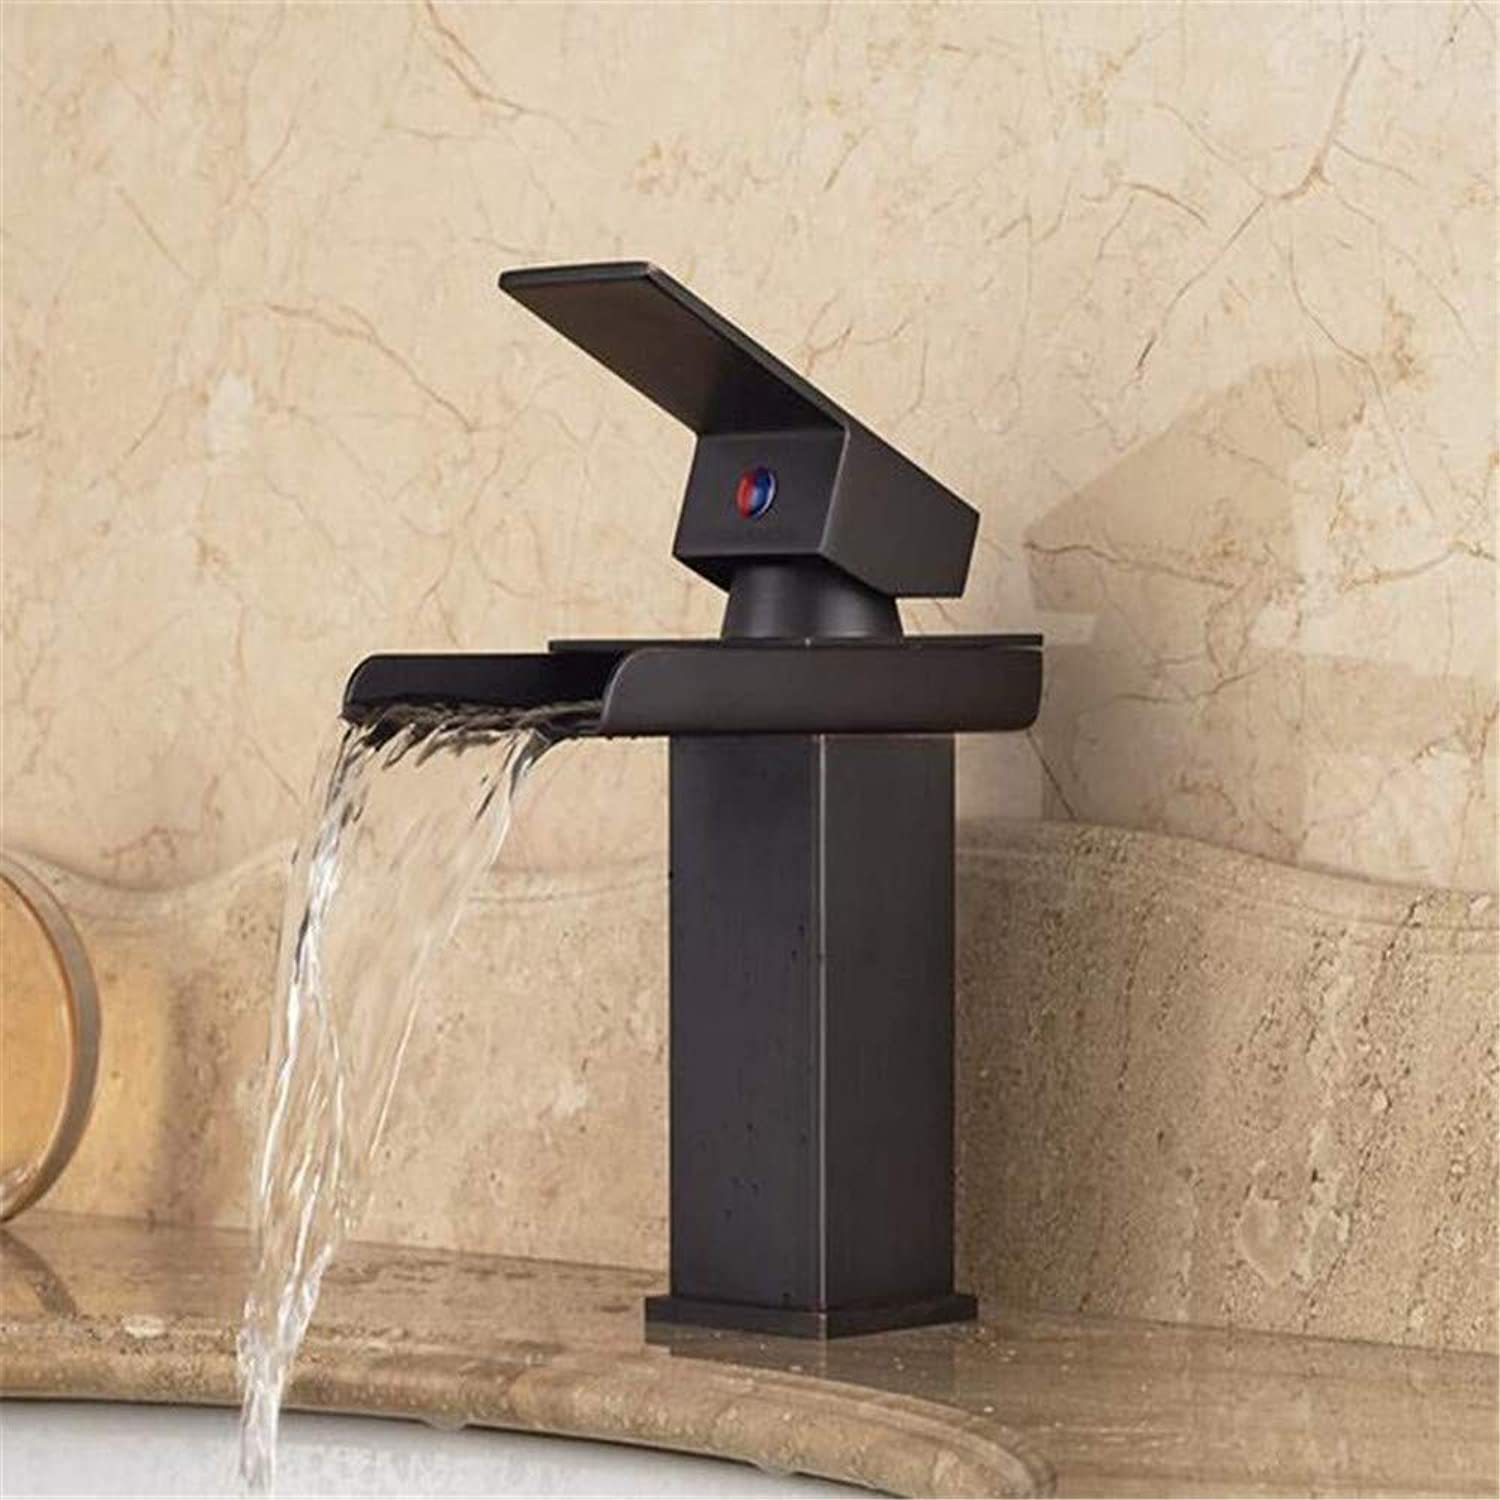 Faucetbasin Faucet Bathroom Sink Tap Single Handle Waterfall Bathroom Sink Faucet Deck Mount Brass Square Mixer Taps Oil Rubbed Bronze